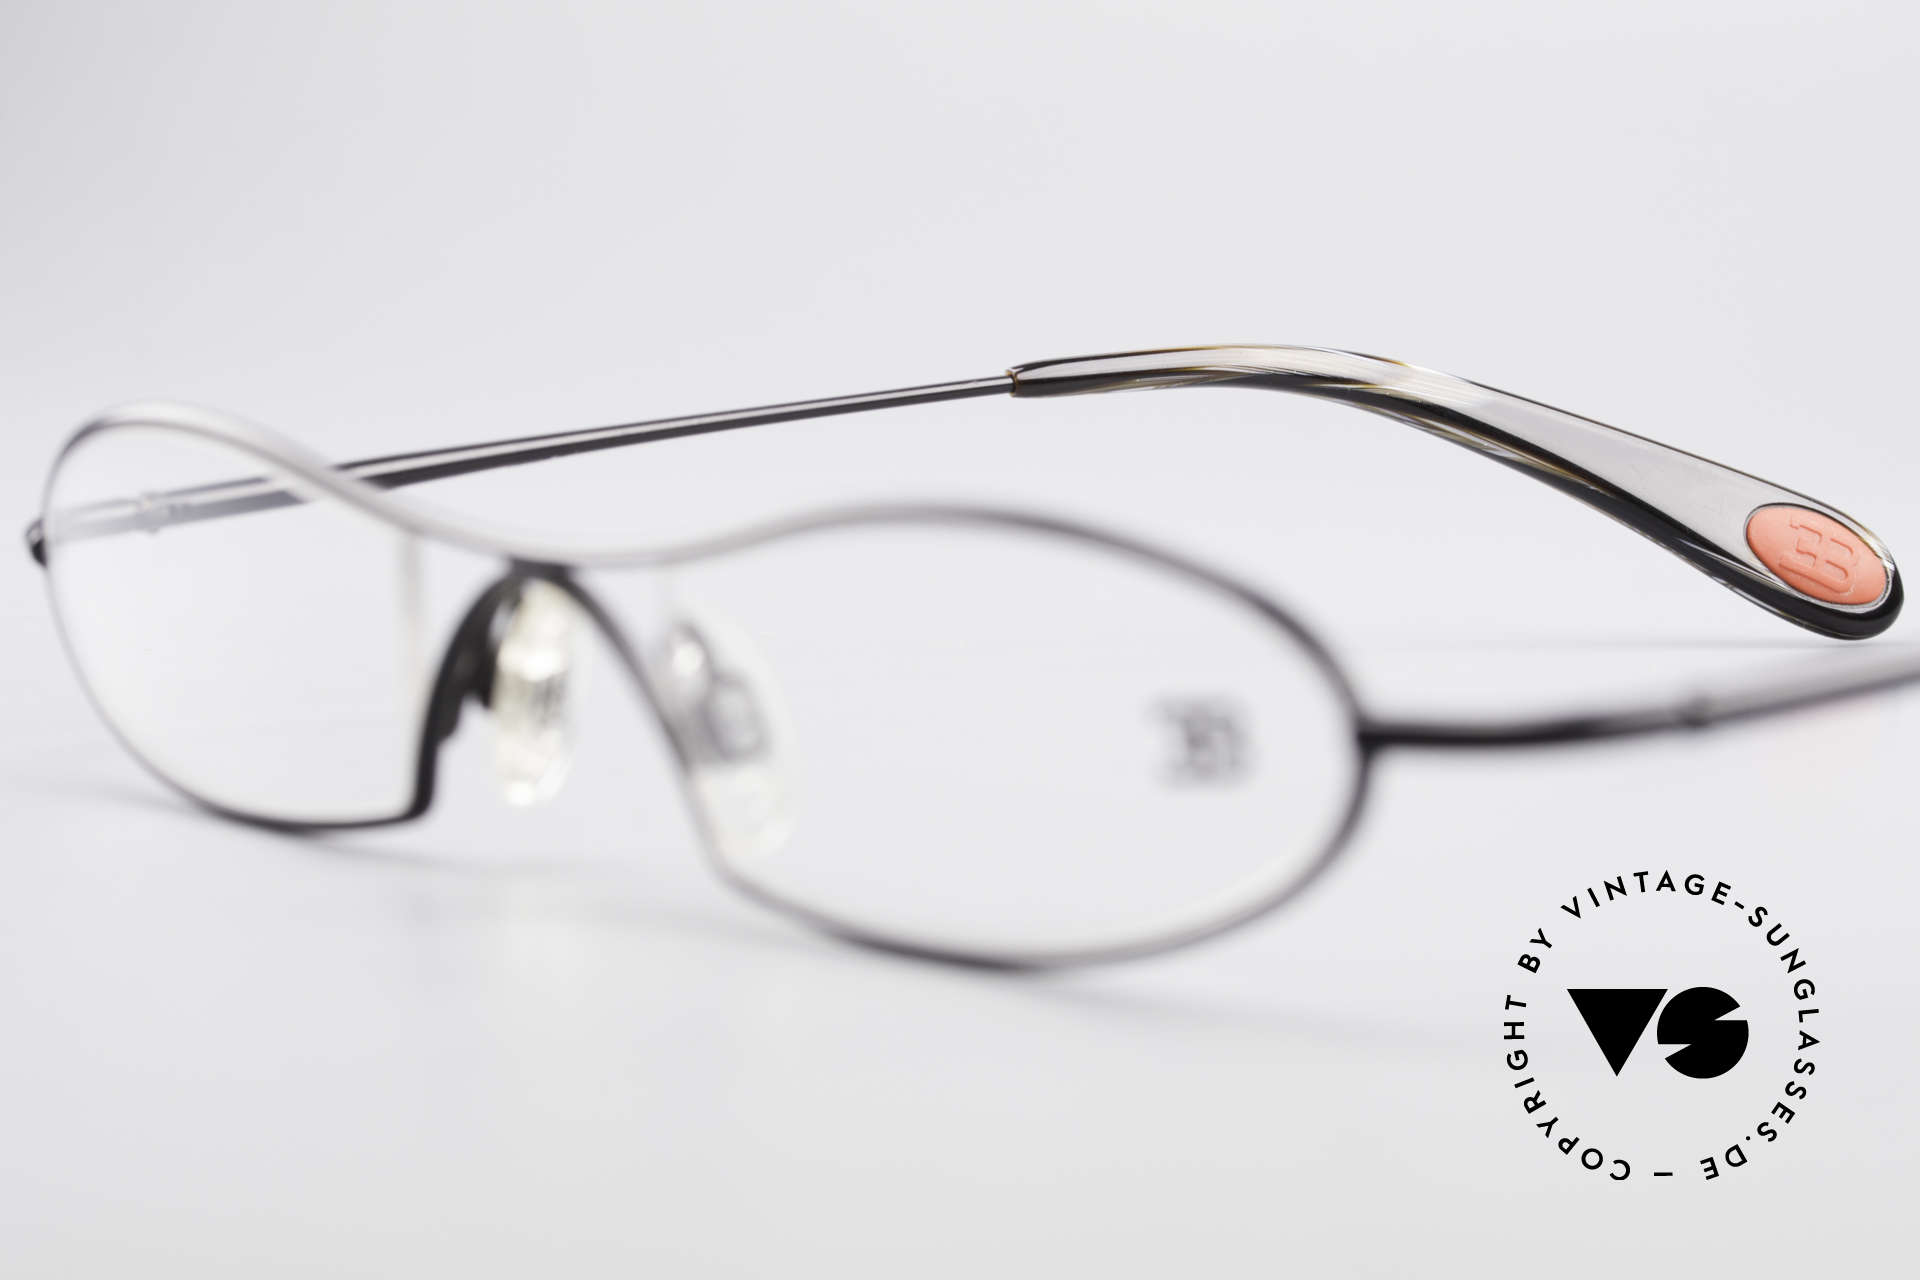 Bugatti 347 Odotype Small Men's Designer Frame, a 15 years old original in unworn condition, Made for Men